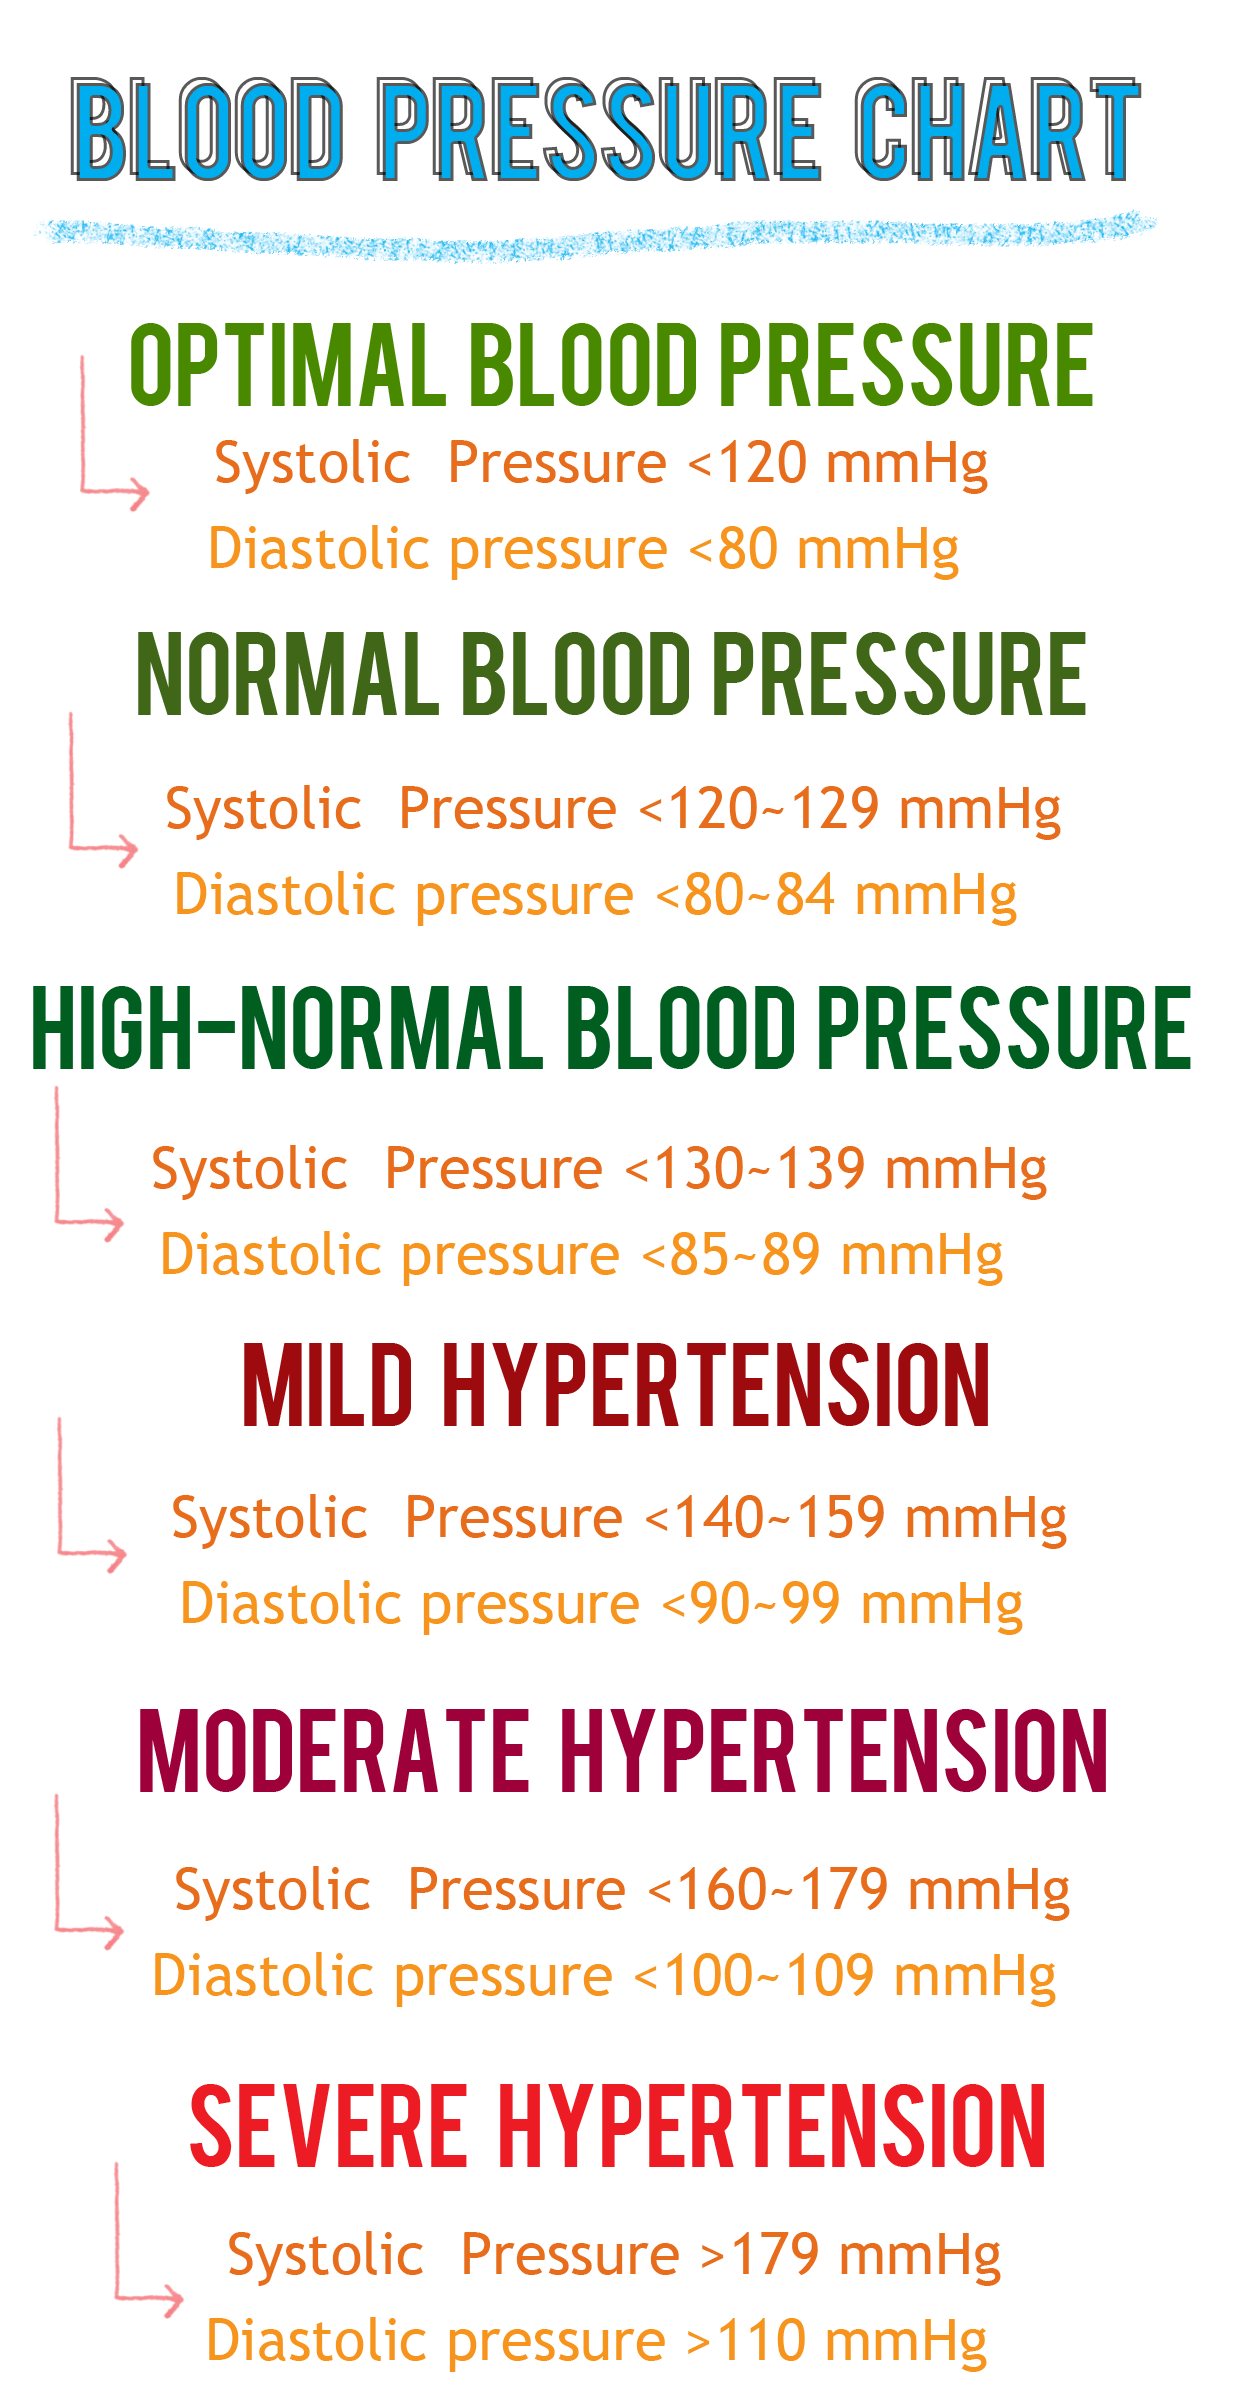 Jcsc wellness blog blog archive faq blood pressure these categories nvjuhfo Gallery